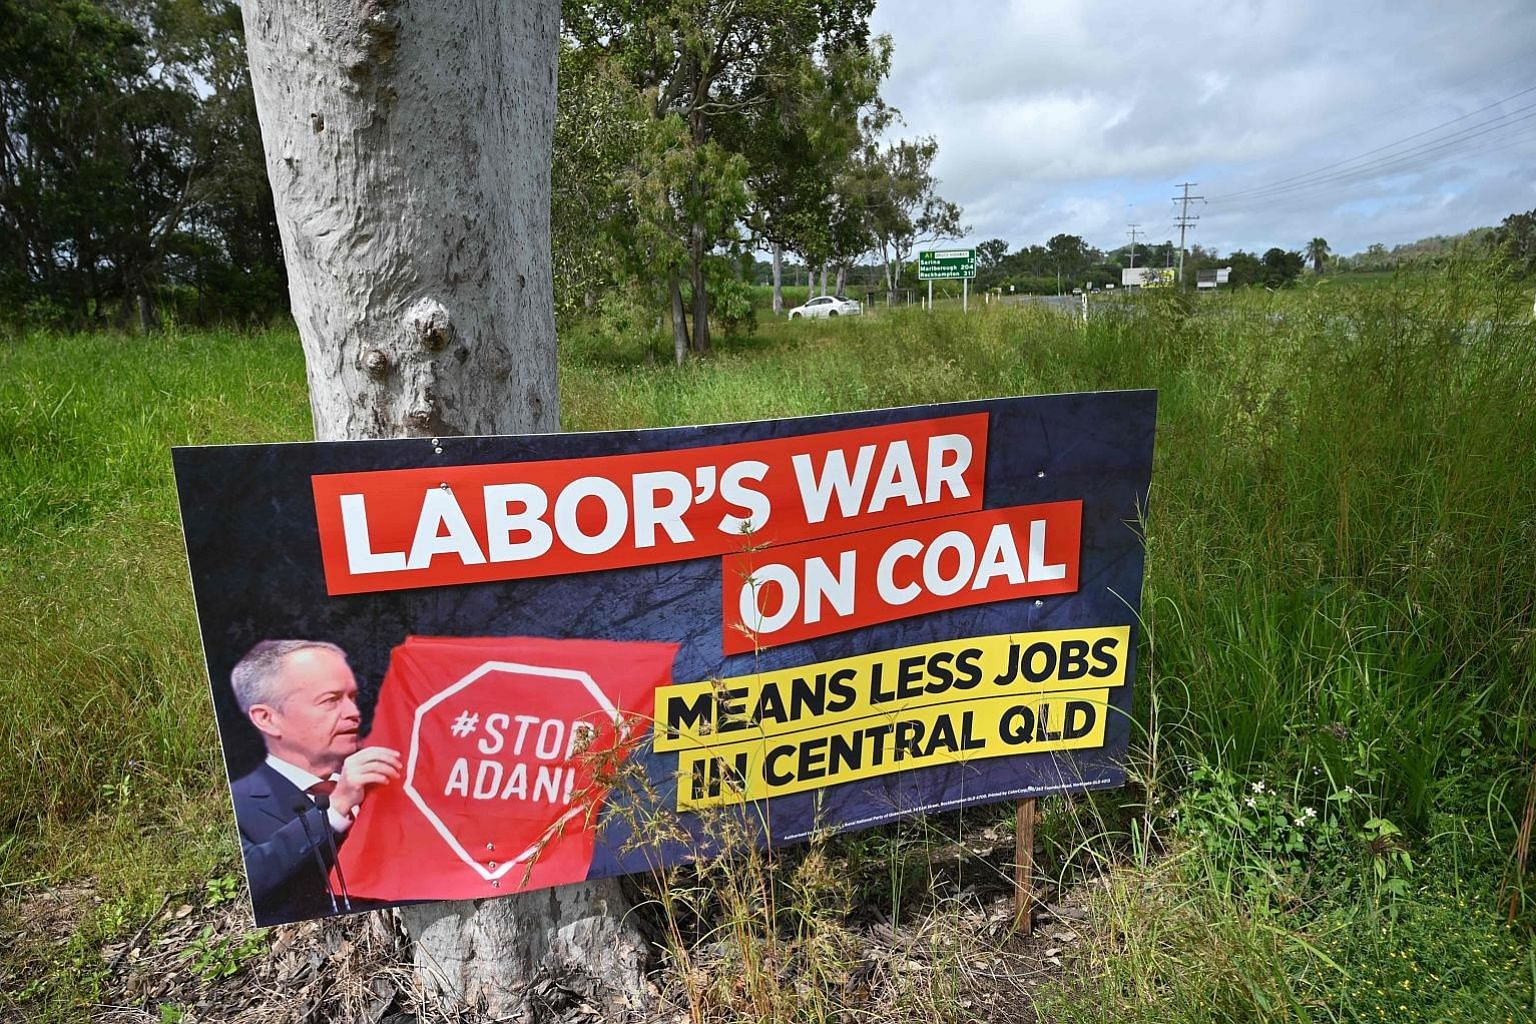 An anti-Labor election message put up in Bowen in northern Queensland early this month. Australian Prime Minister Scott Morrison's coalition, which strongly backed Indian mining giant Adani Group's controversial proposal to build a coal mine, won 58